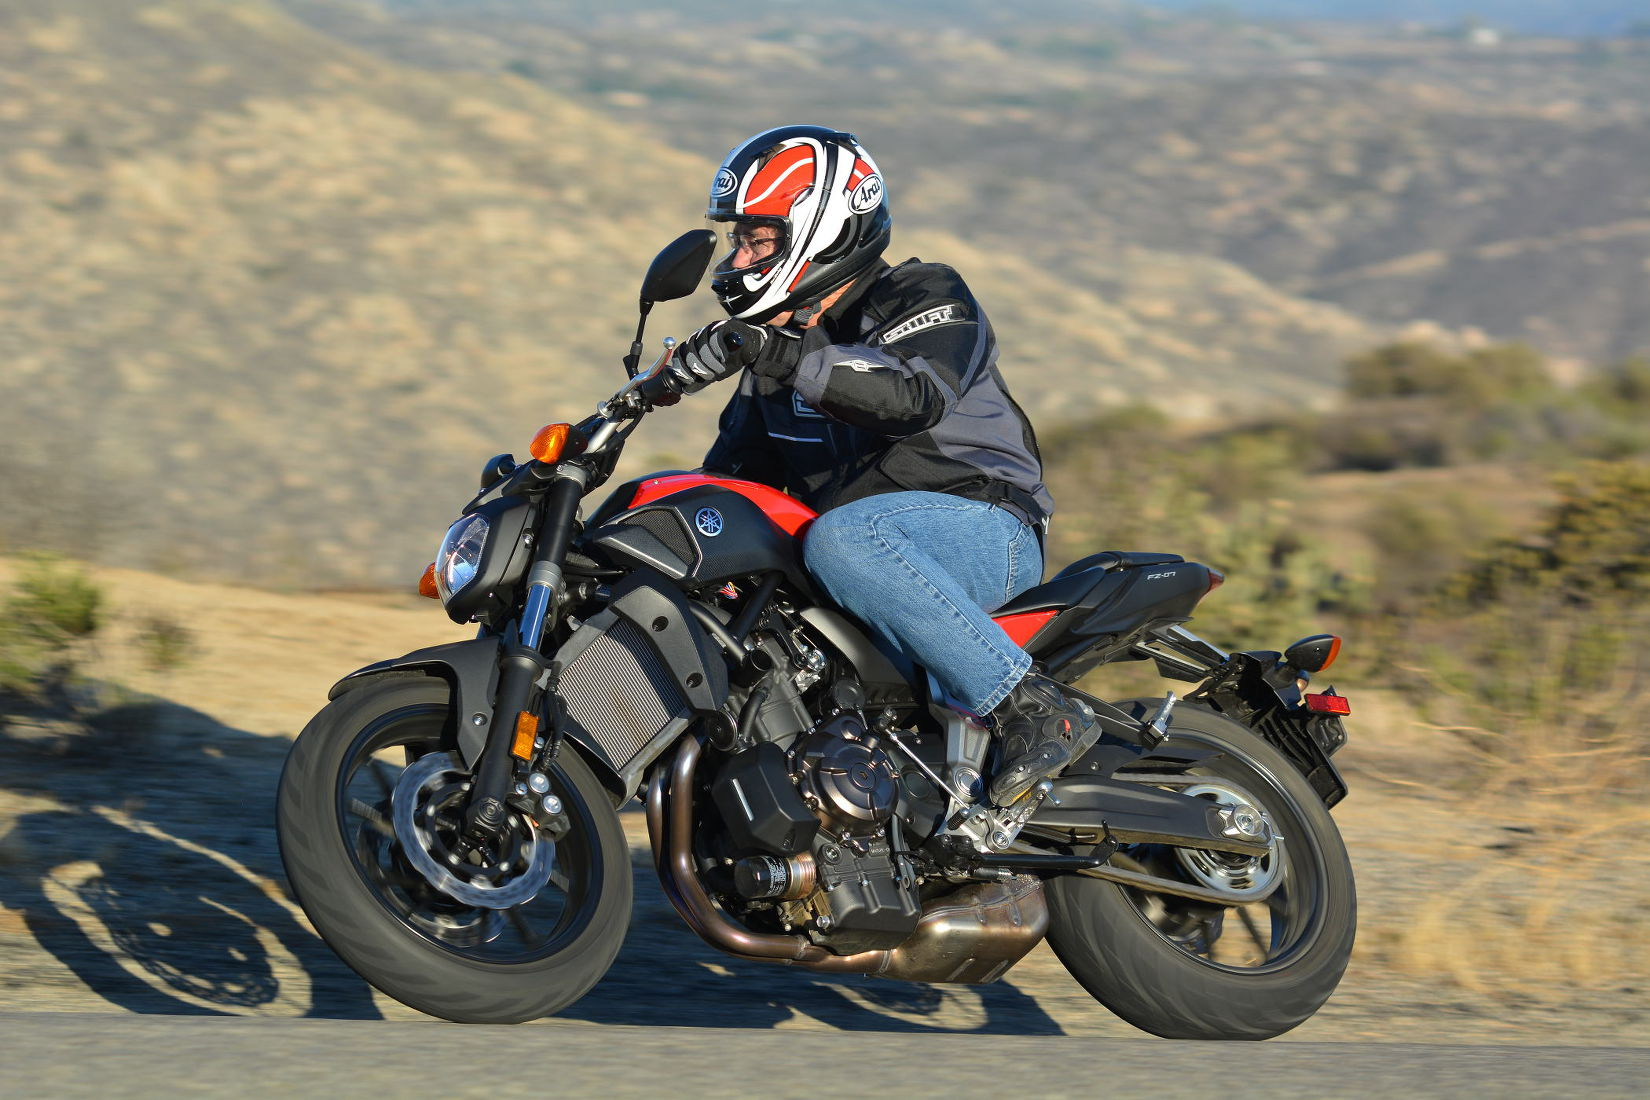 2015 Yamaha FZ 07 MD Ride Review